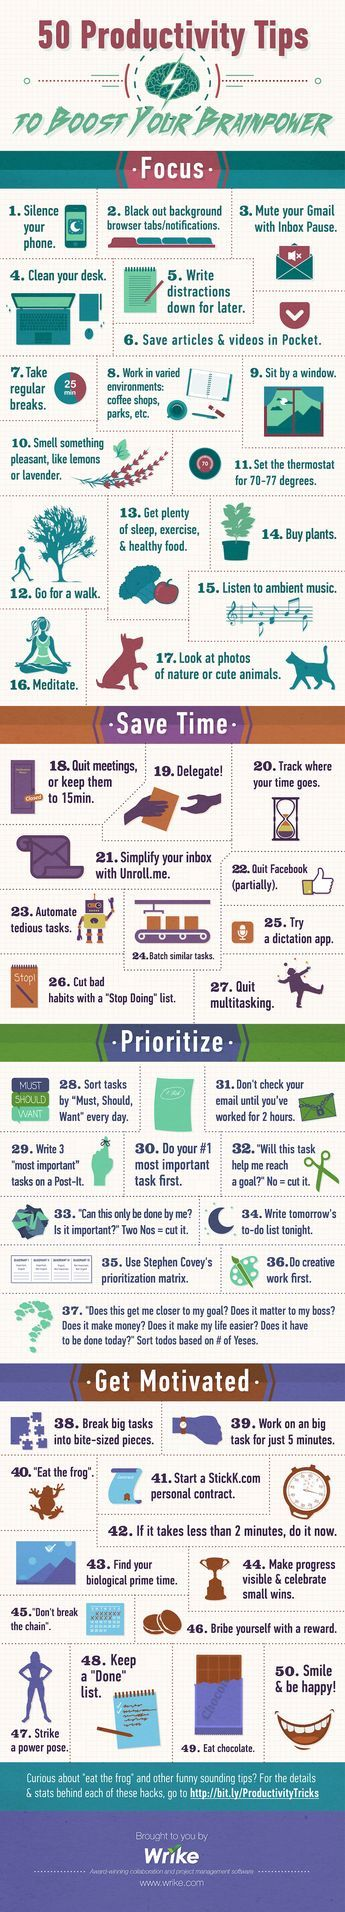 50 Productivity Tips to Boost Your Brainpower (#infographic)